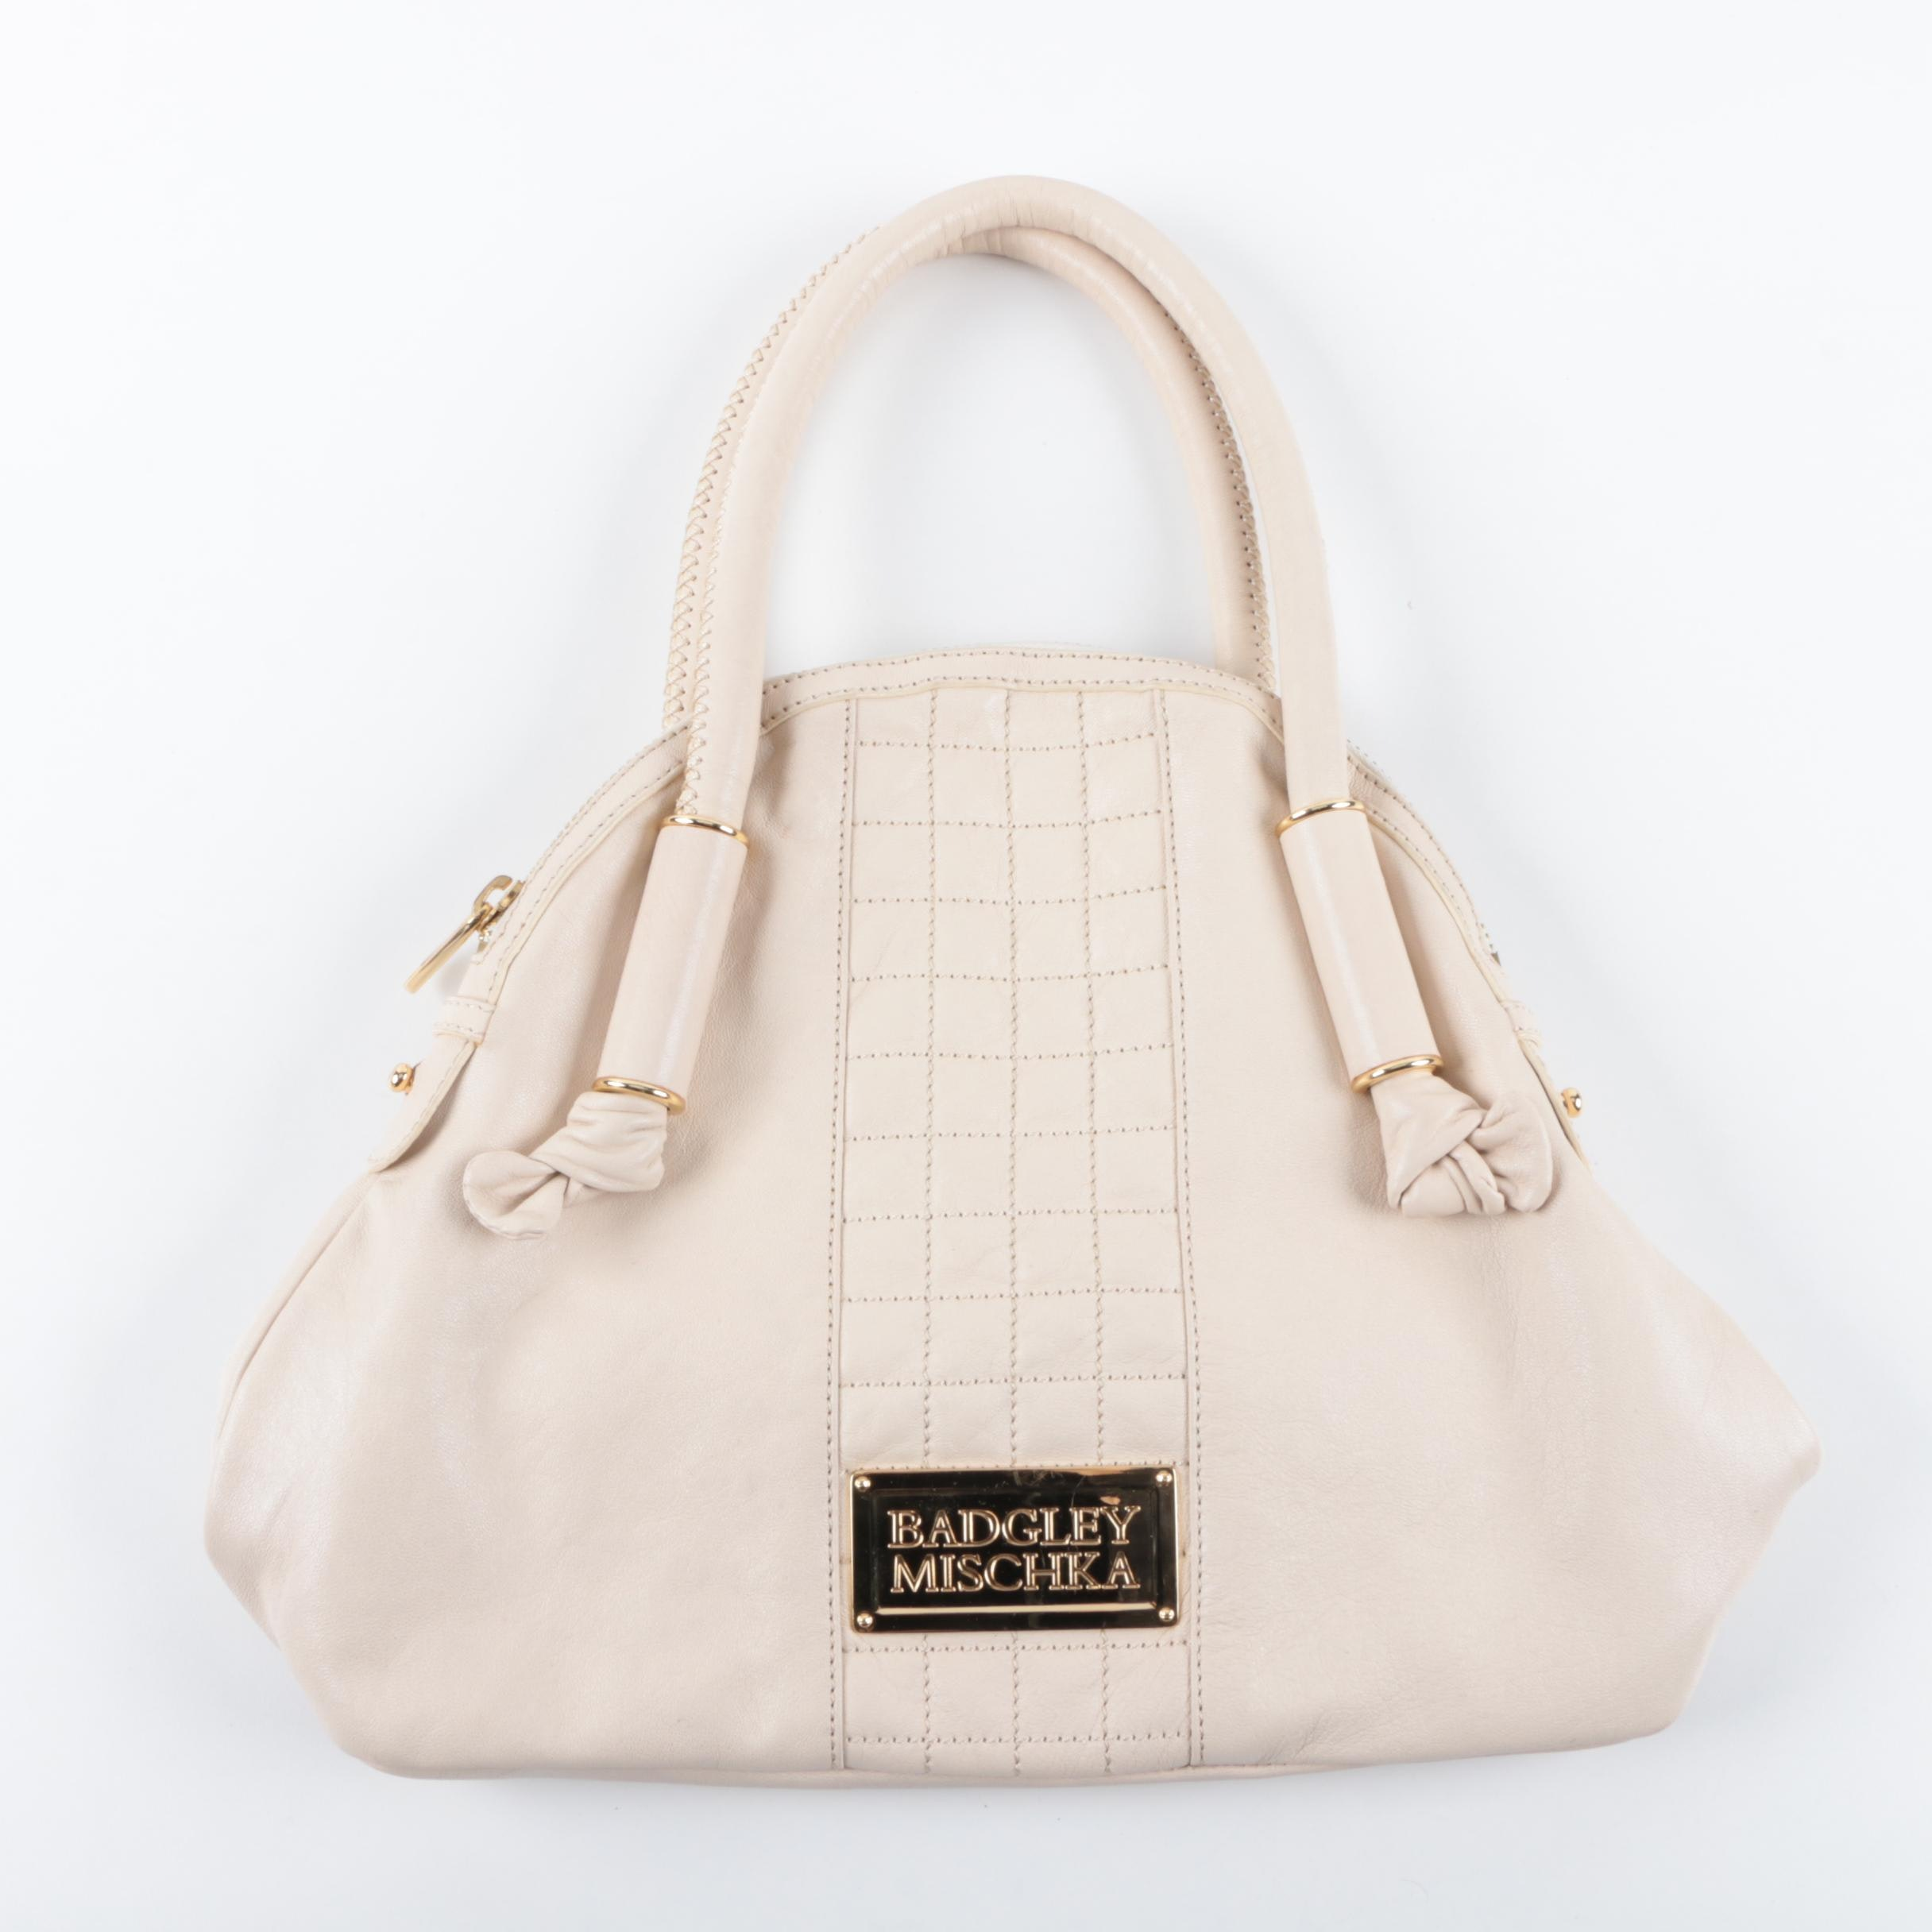 Badgley Mischka Quilted Cream Leather Handbag